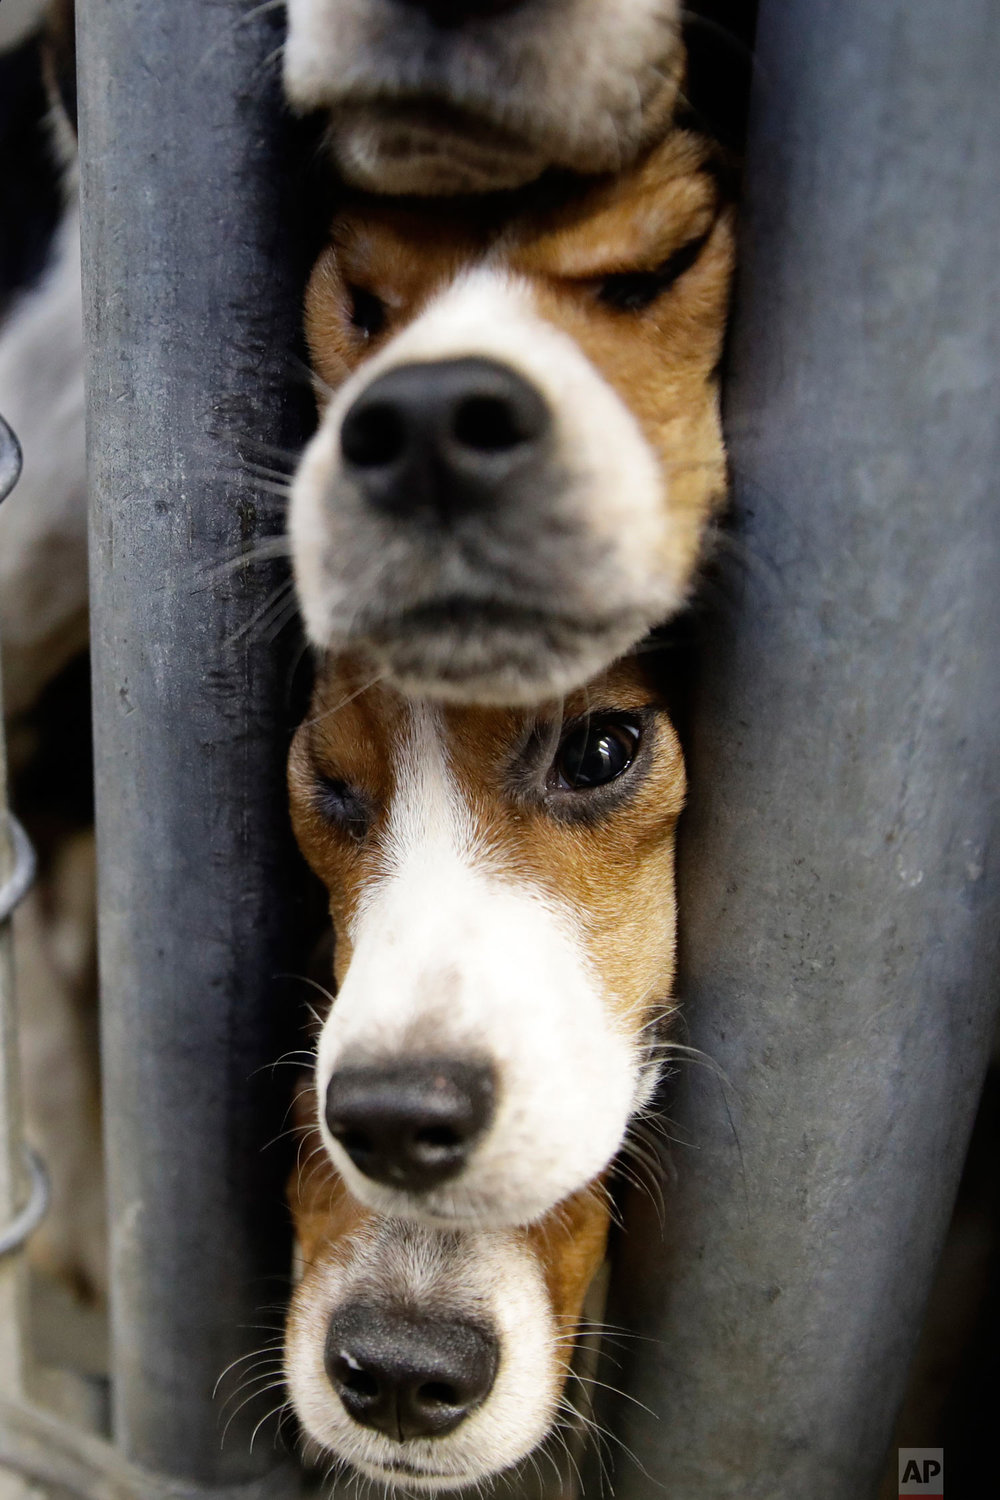 Rescued beagles peer out from their kennel at the The Lehigh County Humane Society in Allentown, Pa., Monday, Oct. 8, 2018. Animal welfare workers removed 71 beagles from a cramped house in rural Pennsylvania, where officials say a woman had been breeding them without a license before she died last month. (AP Photo/Matt Rourke)